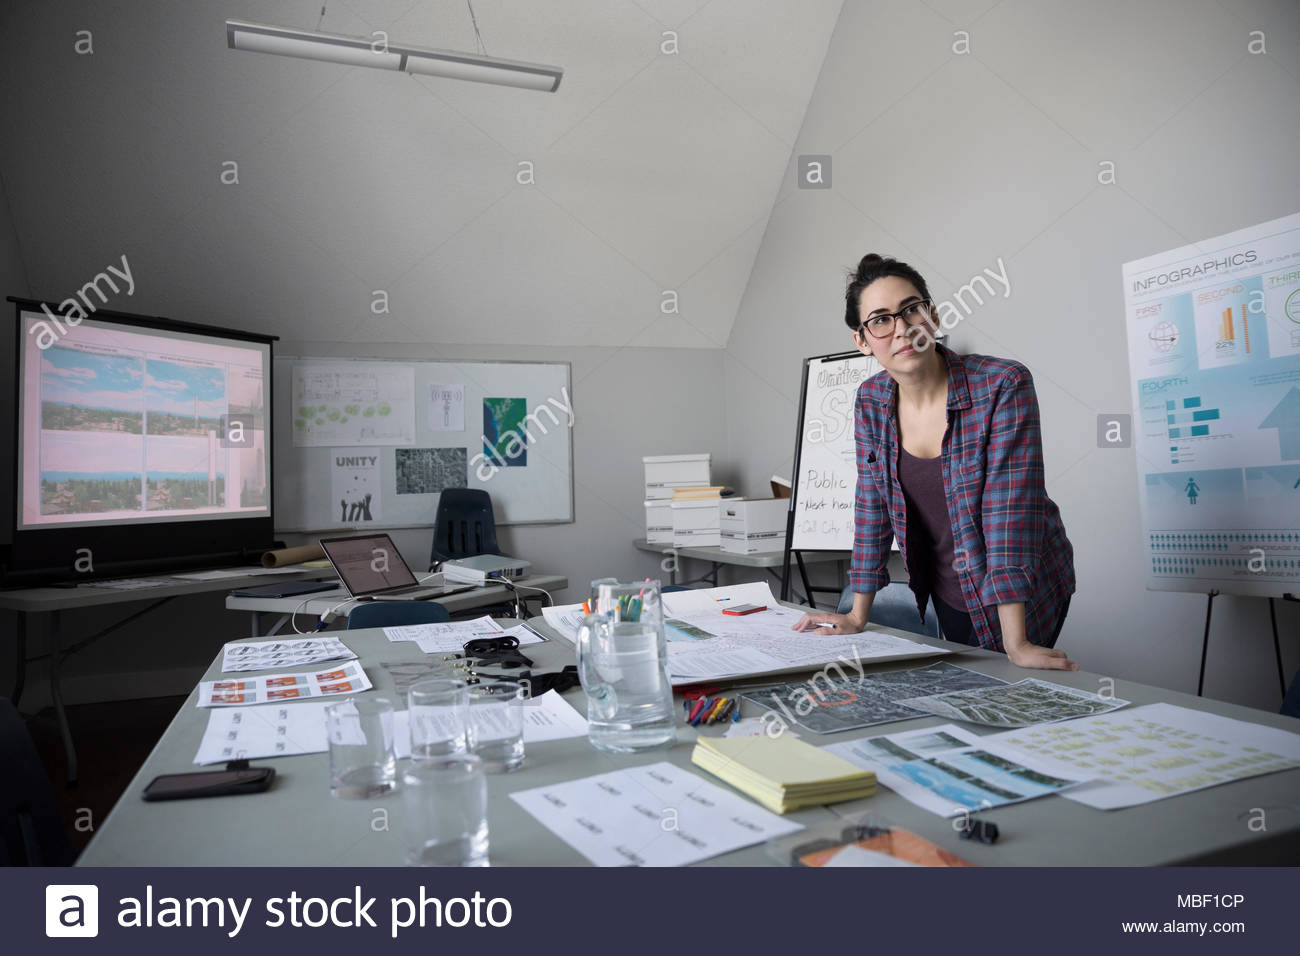 Female city planner reviewing blueprints, working in office - Stock Image